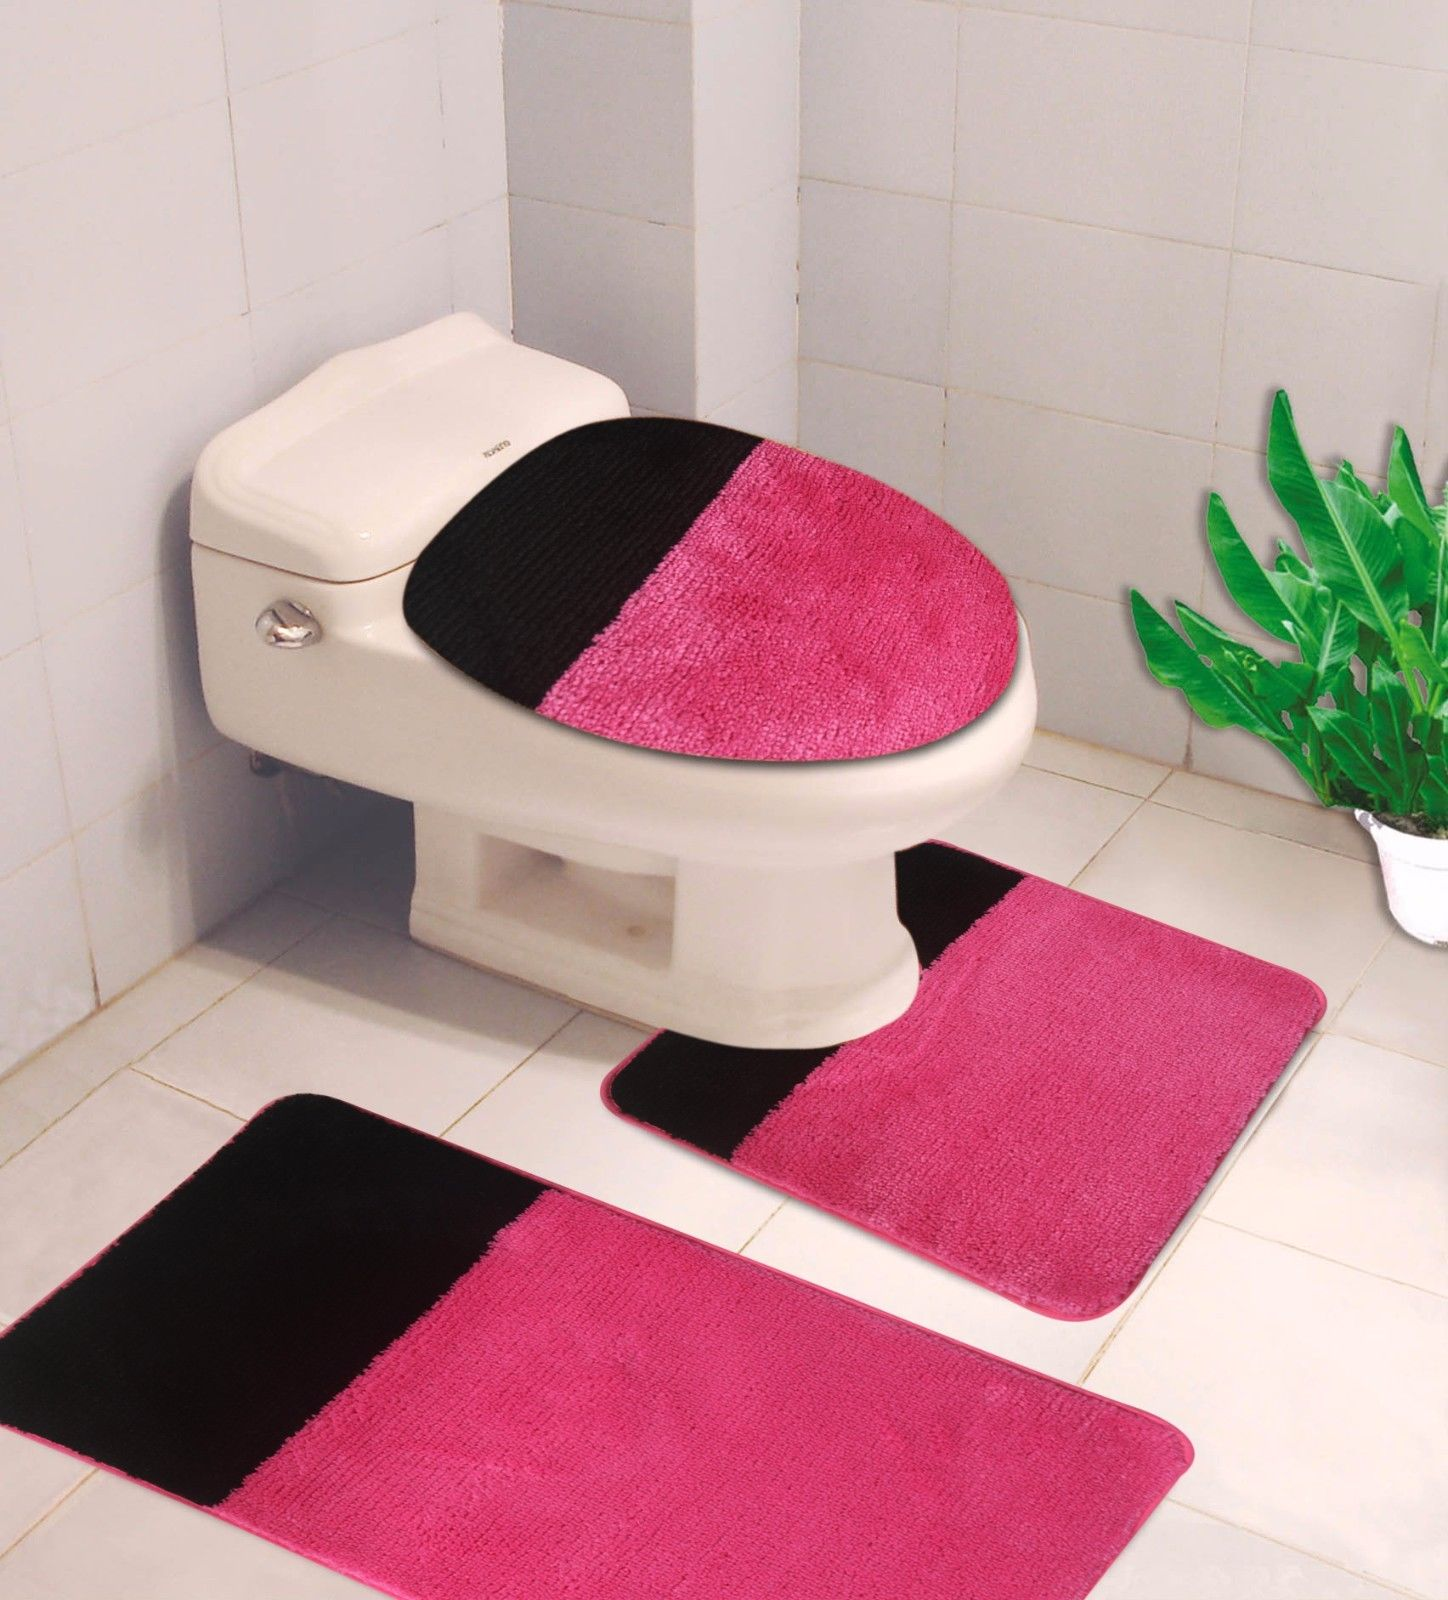 """3-PC (#7) 2 Tone Hot Pink/Black HIGH QUALITY Jacquard Bathroom Bath Rug Set Washable Anti Slip Rug 18""""x28"""", Contour Mat 18""""x18"""" and Toilet Seat Lid Cover 18""""x19"""" with Non-Skid Rubber Back"""